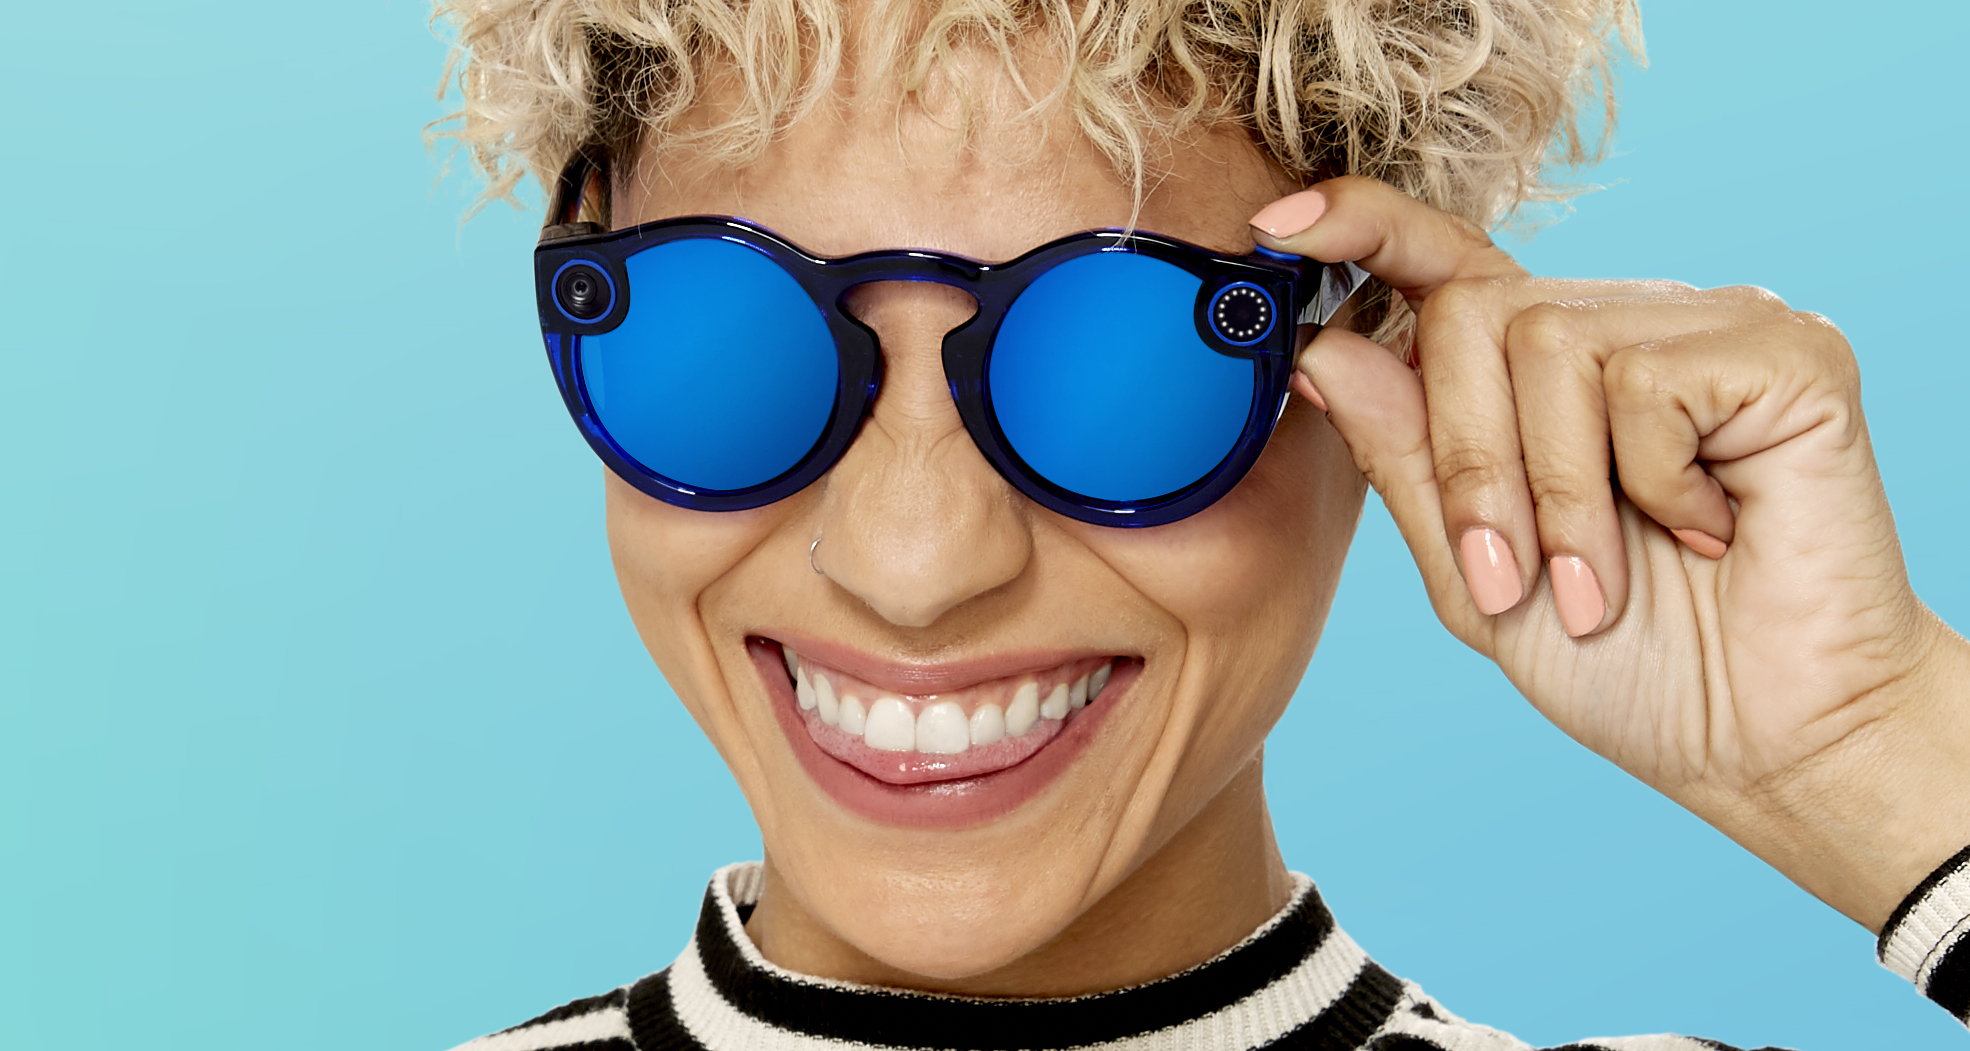 Snapchat Spectacles 2: Price, Features, How To Order